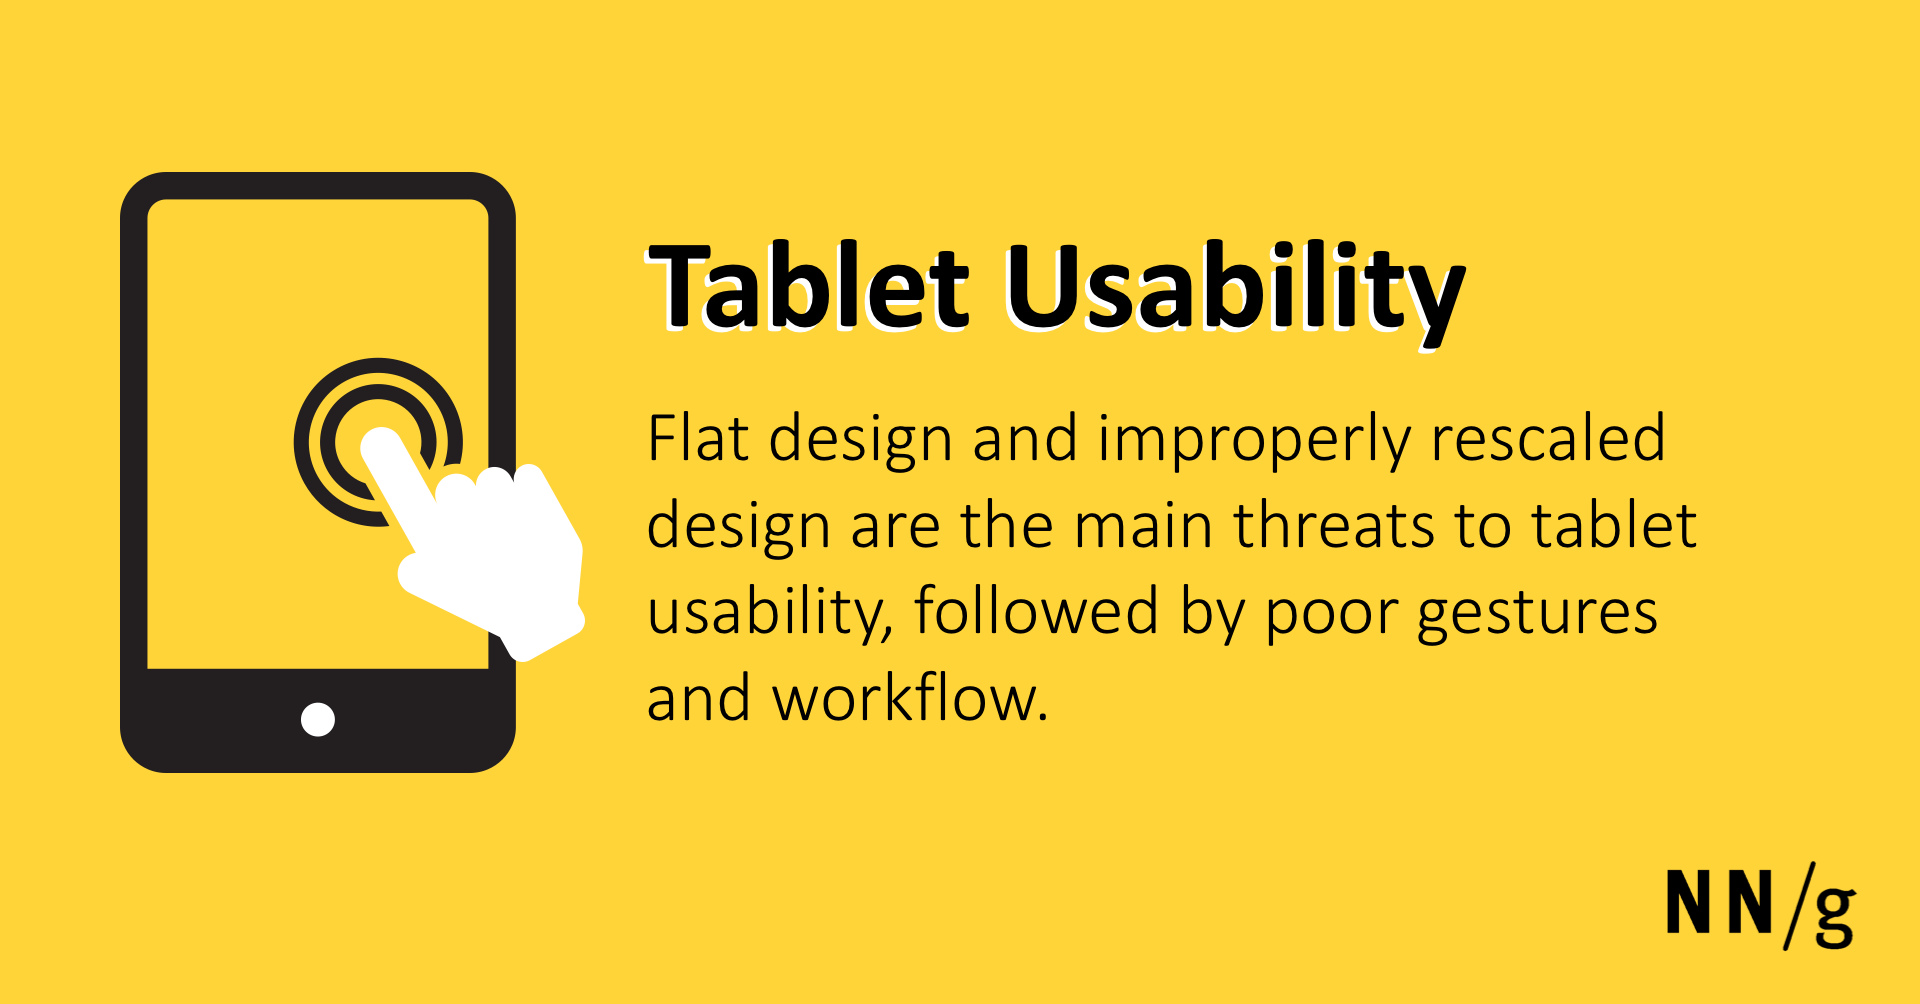 Tablet Usability: Findings from User Research